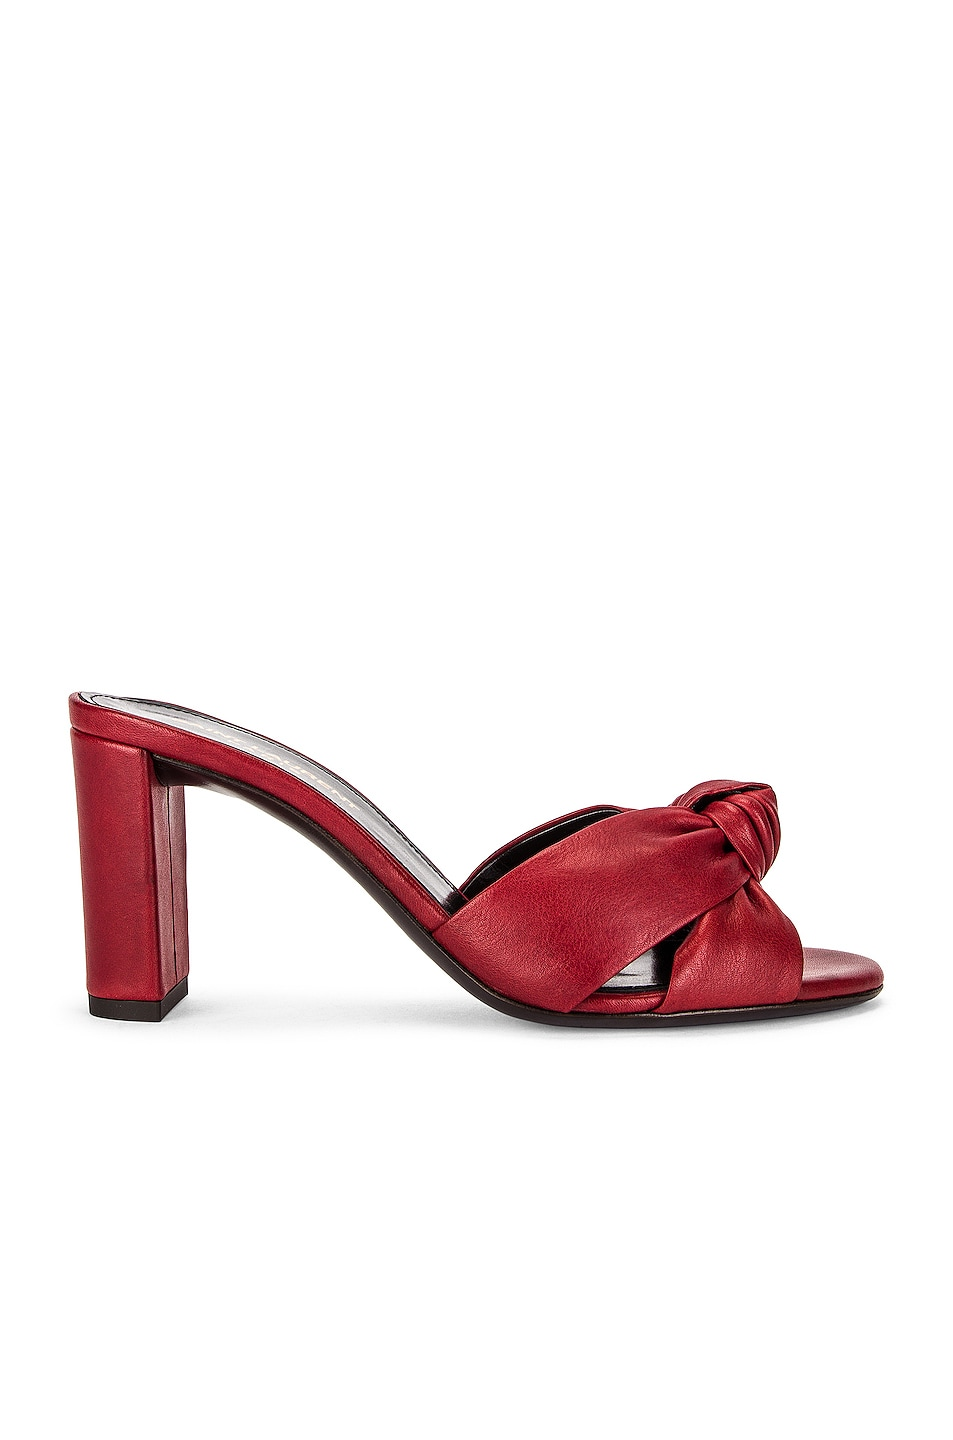 Image 1 of Saint Laurent Bianca Mule Sandals in Pomerol